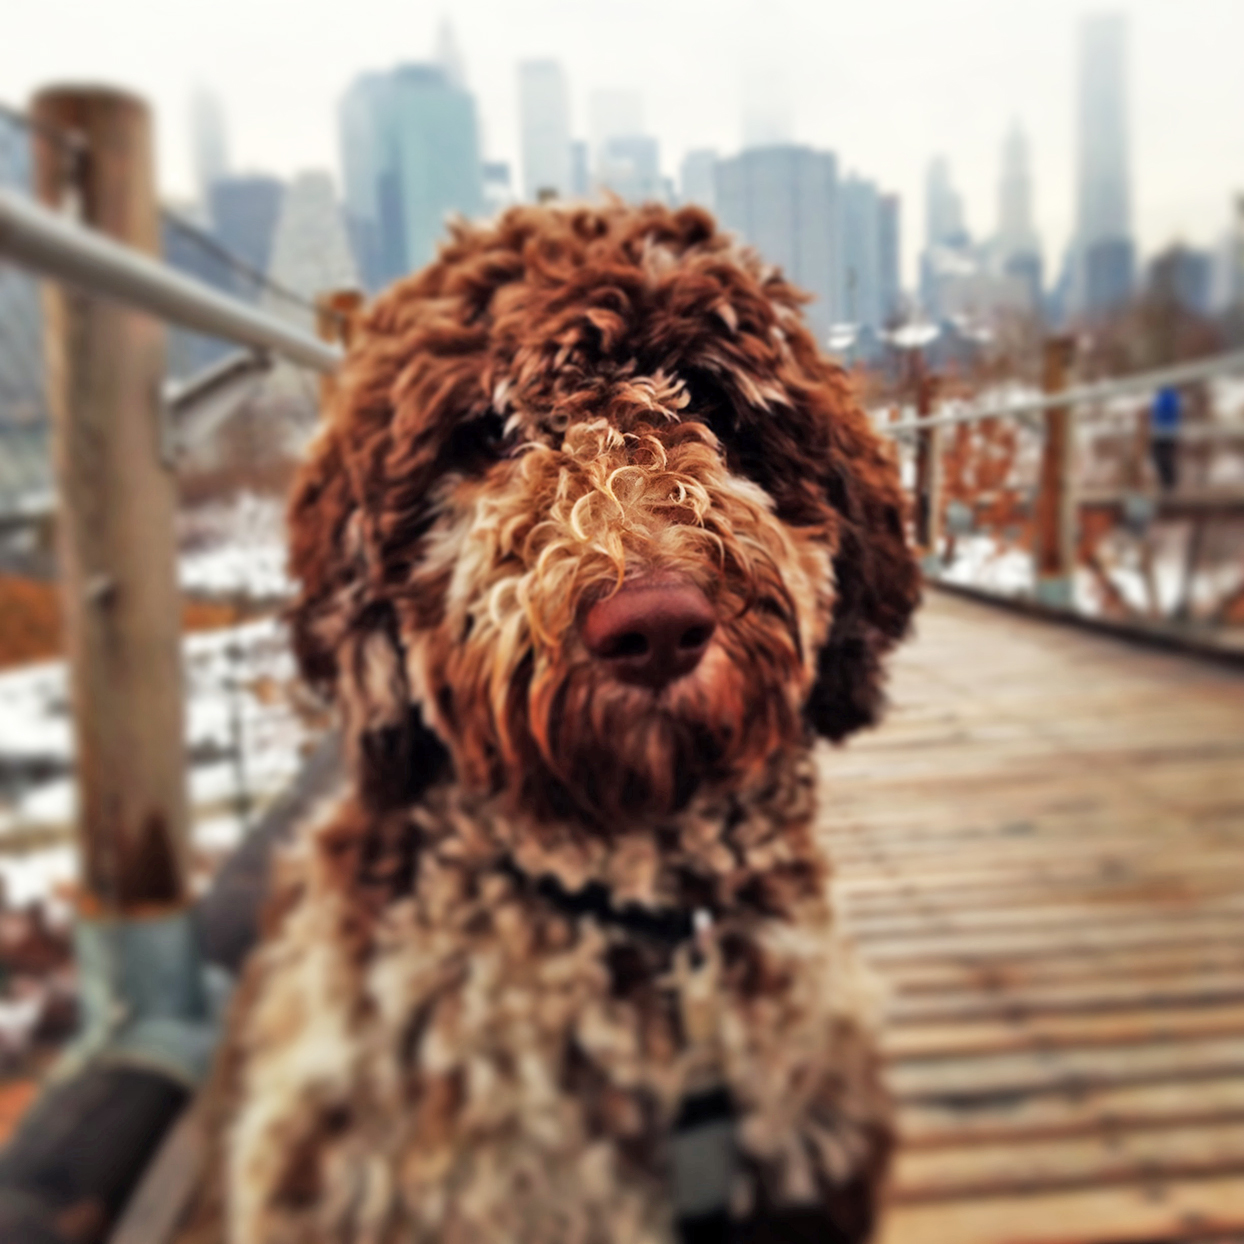 Brown whoodle sits on a wooden bridge in a city